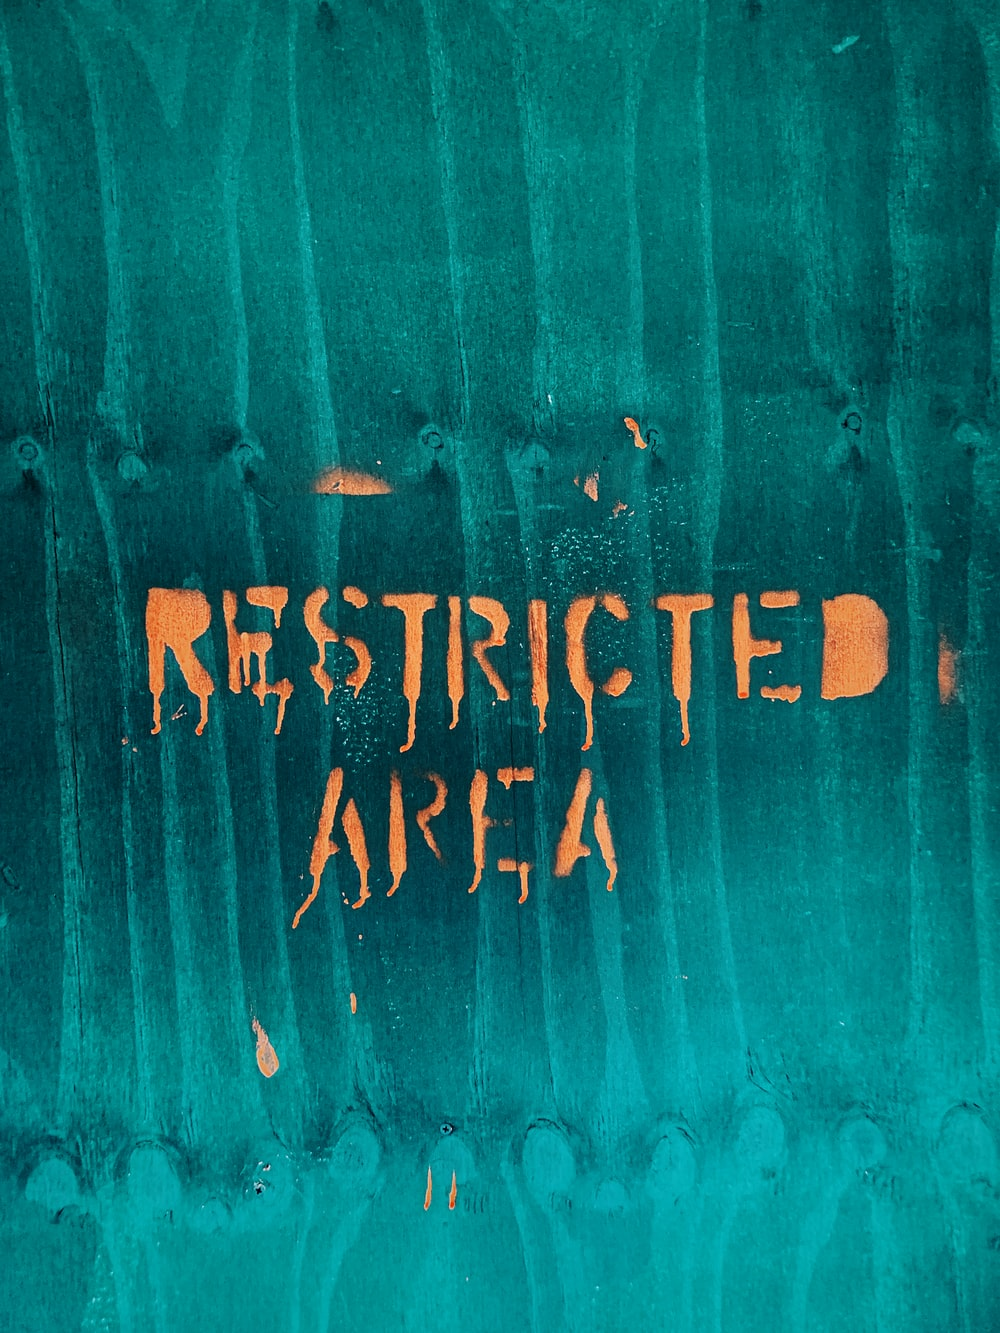 restricted area text with teal background